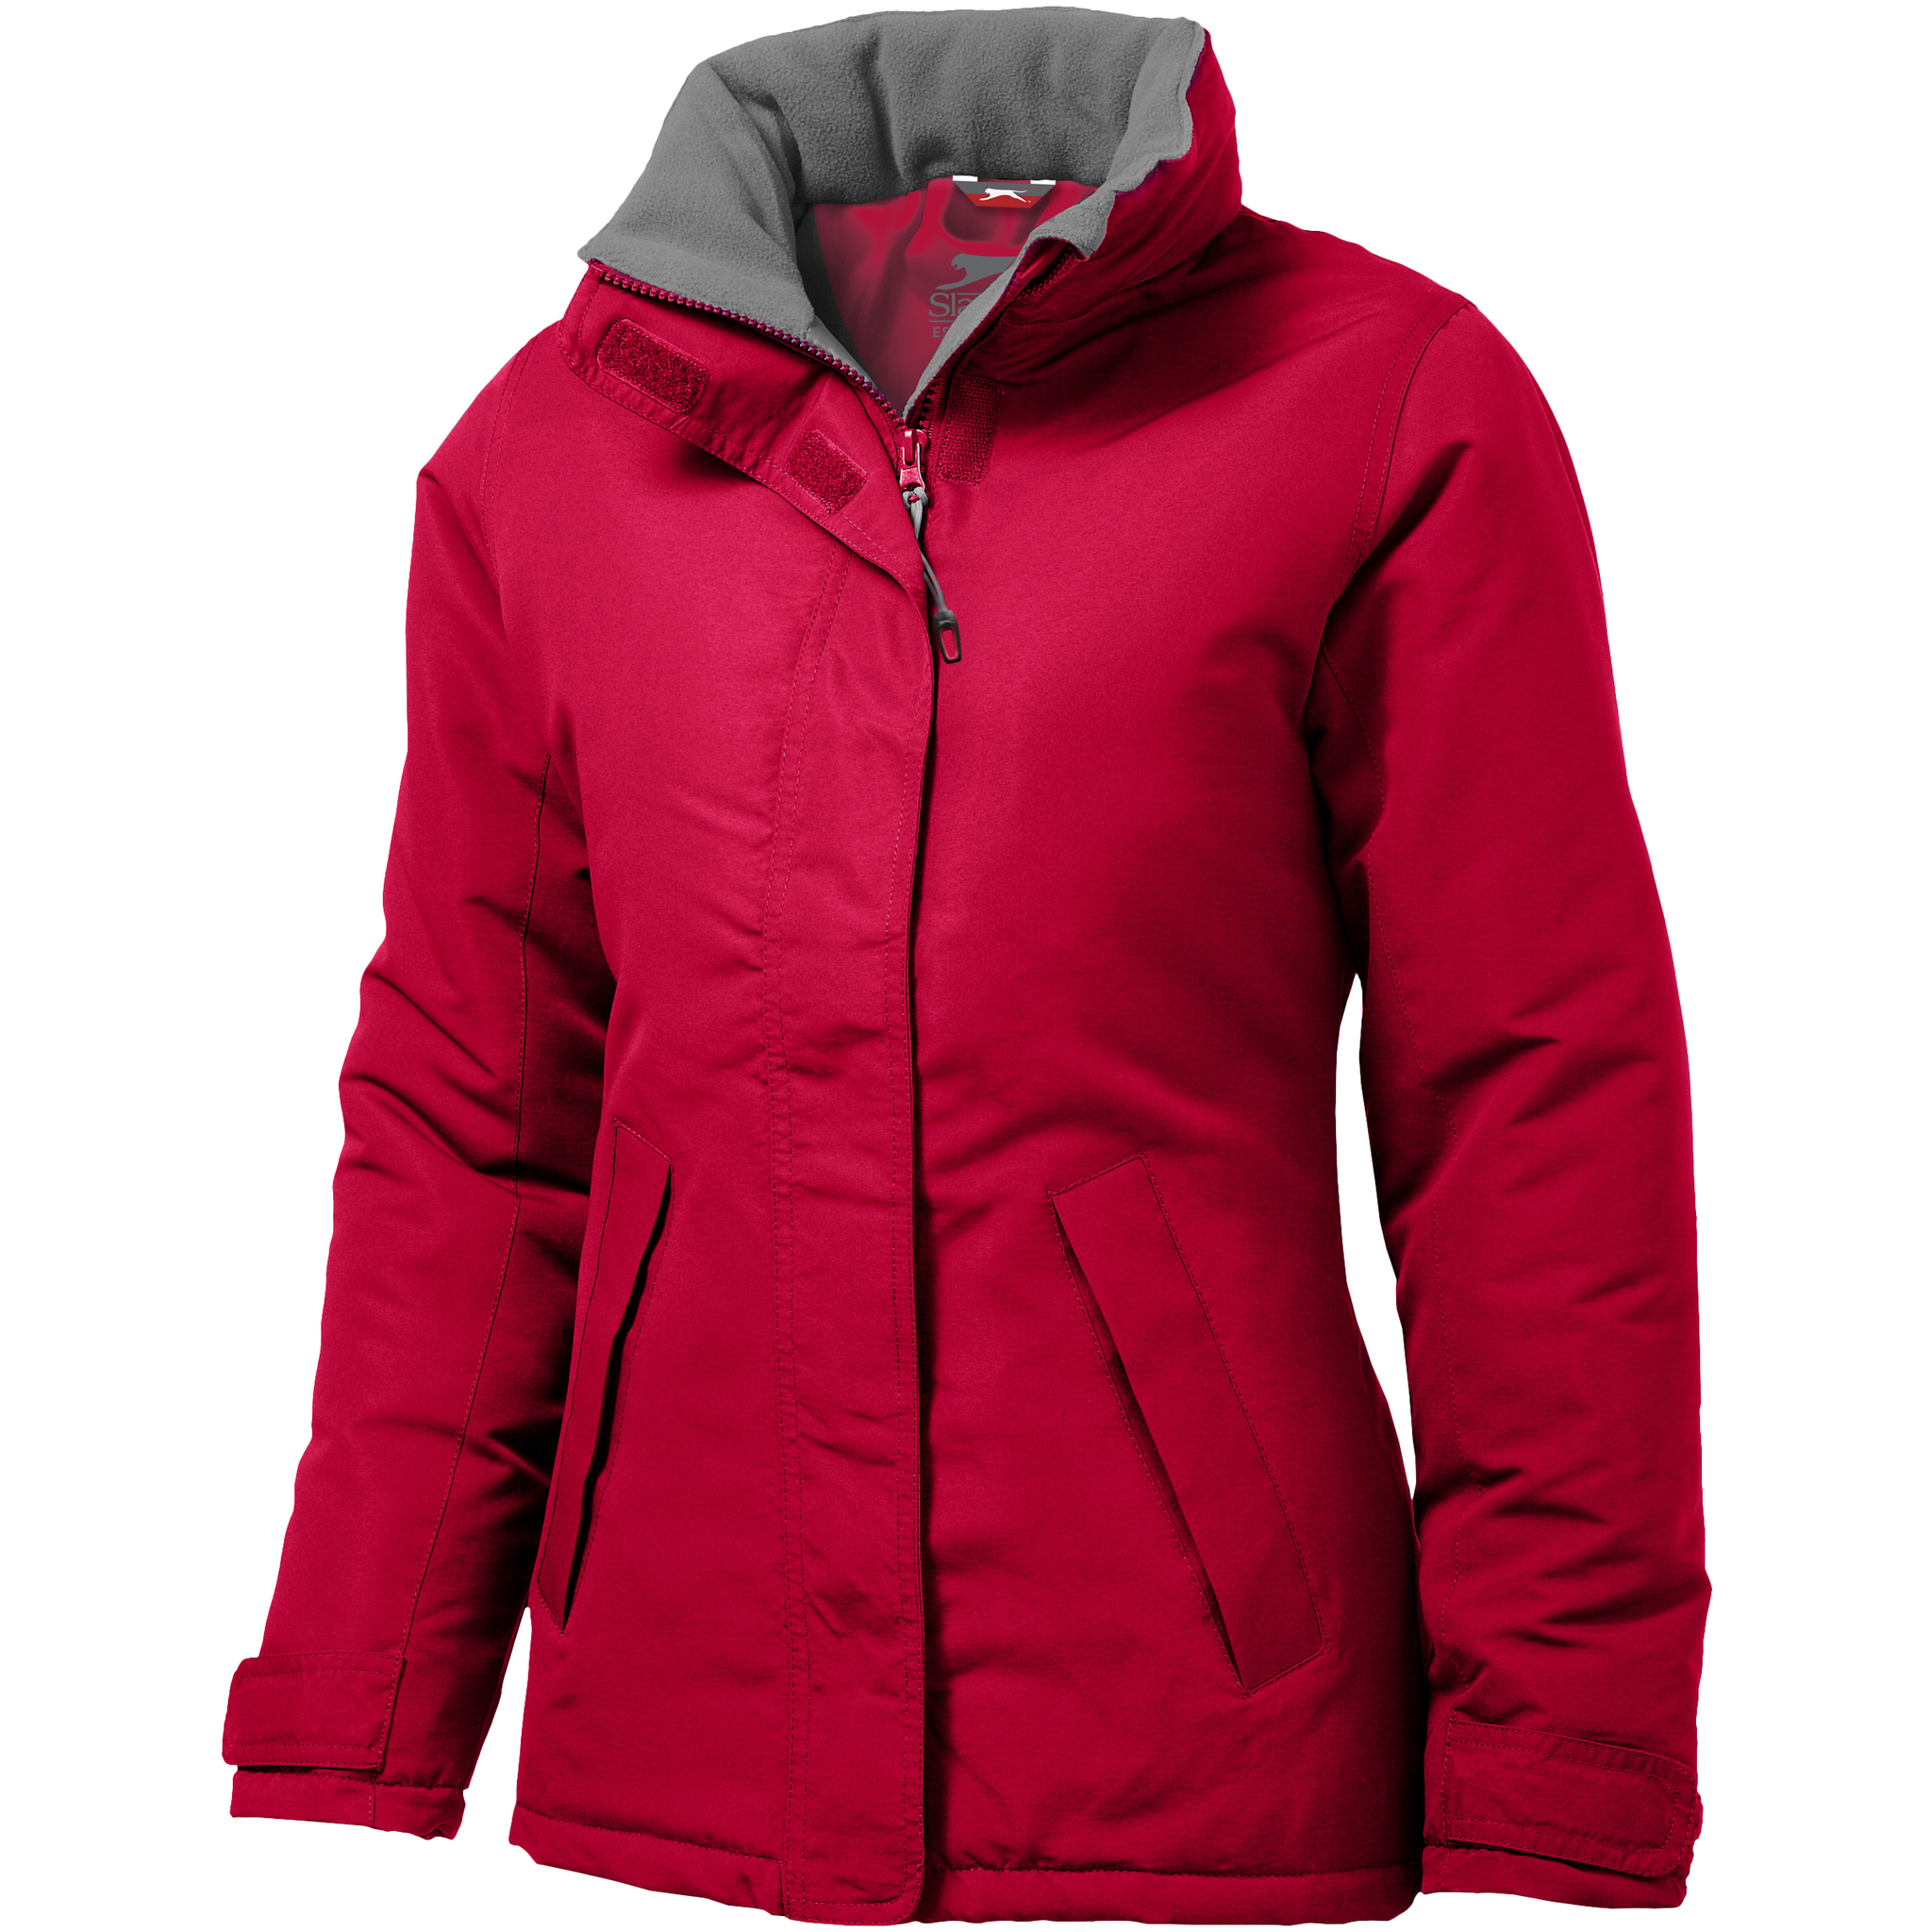 Slazenger Womens/Ladies Under Spin Insulated Jacket (XL) (Red)